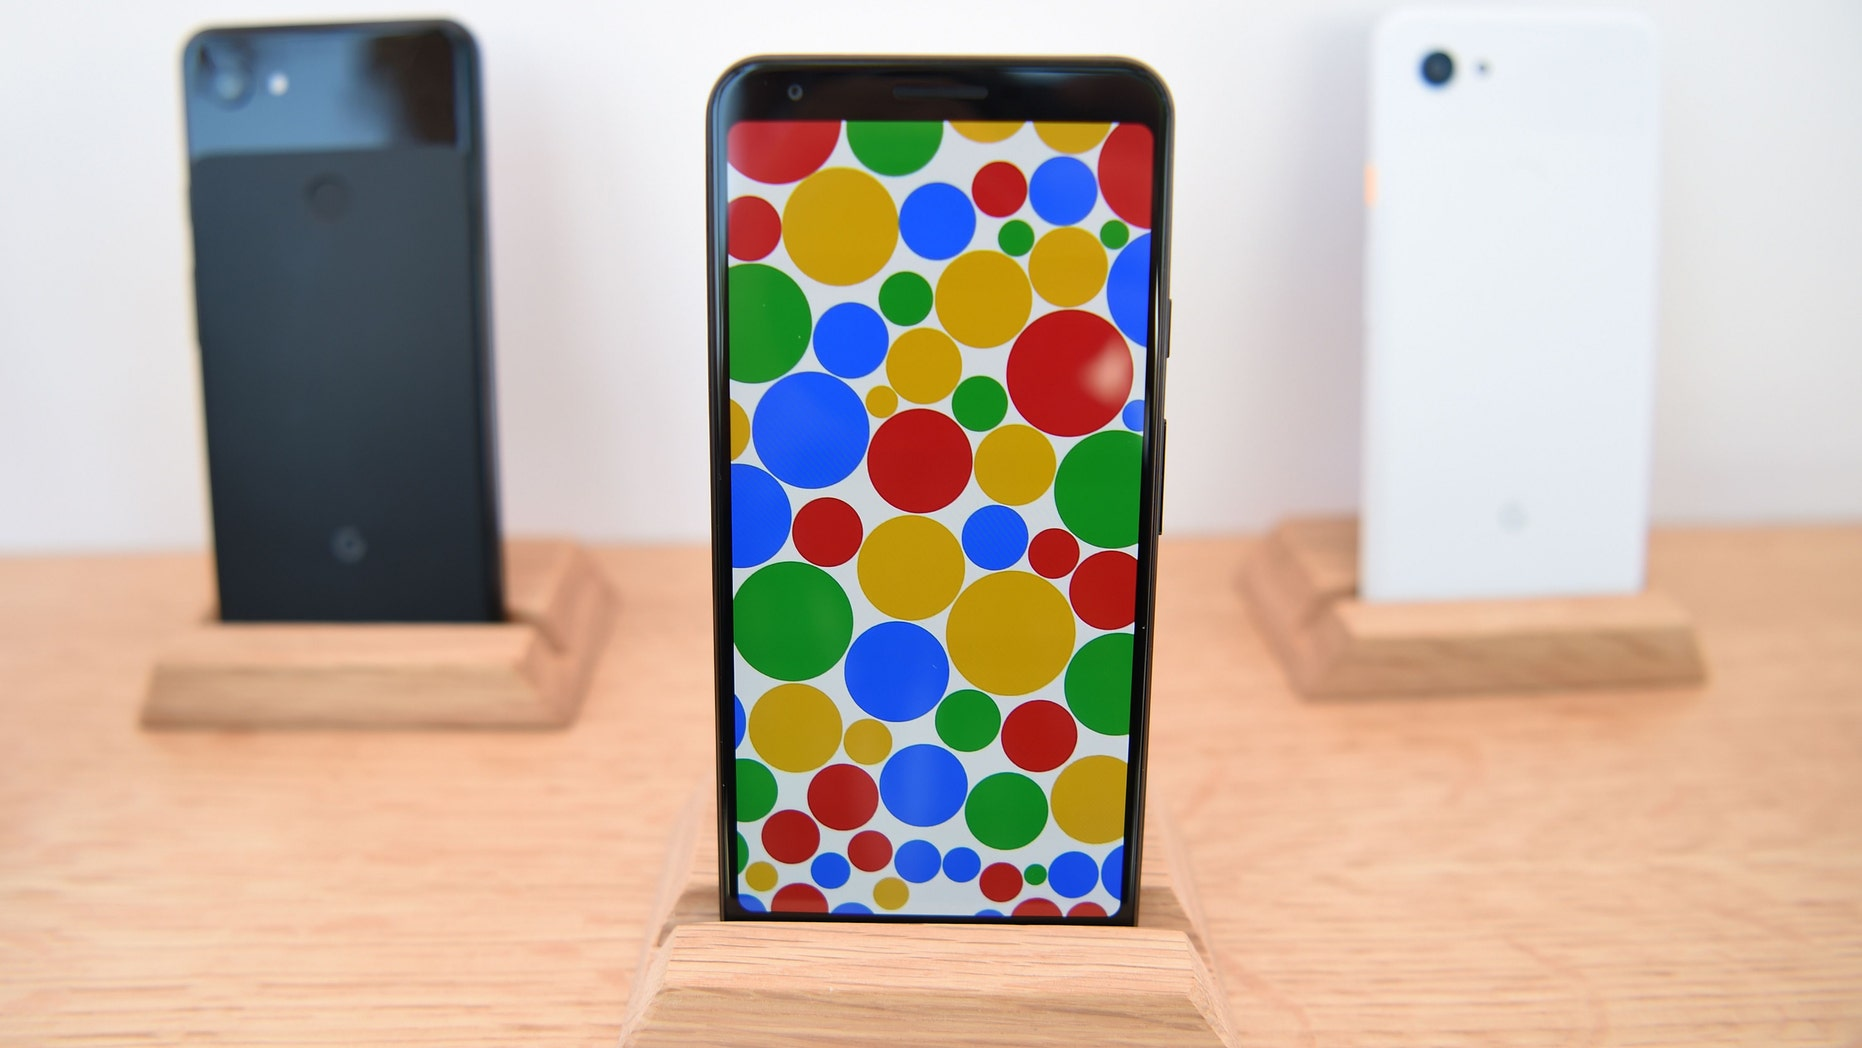 File photo - A Google Pixel 3a phone (C) is displayed during the Google I/O conference at Shoreline Amphitheatre in Mountain View, California on May 7, 2019.